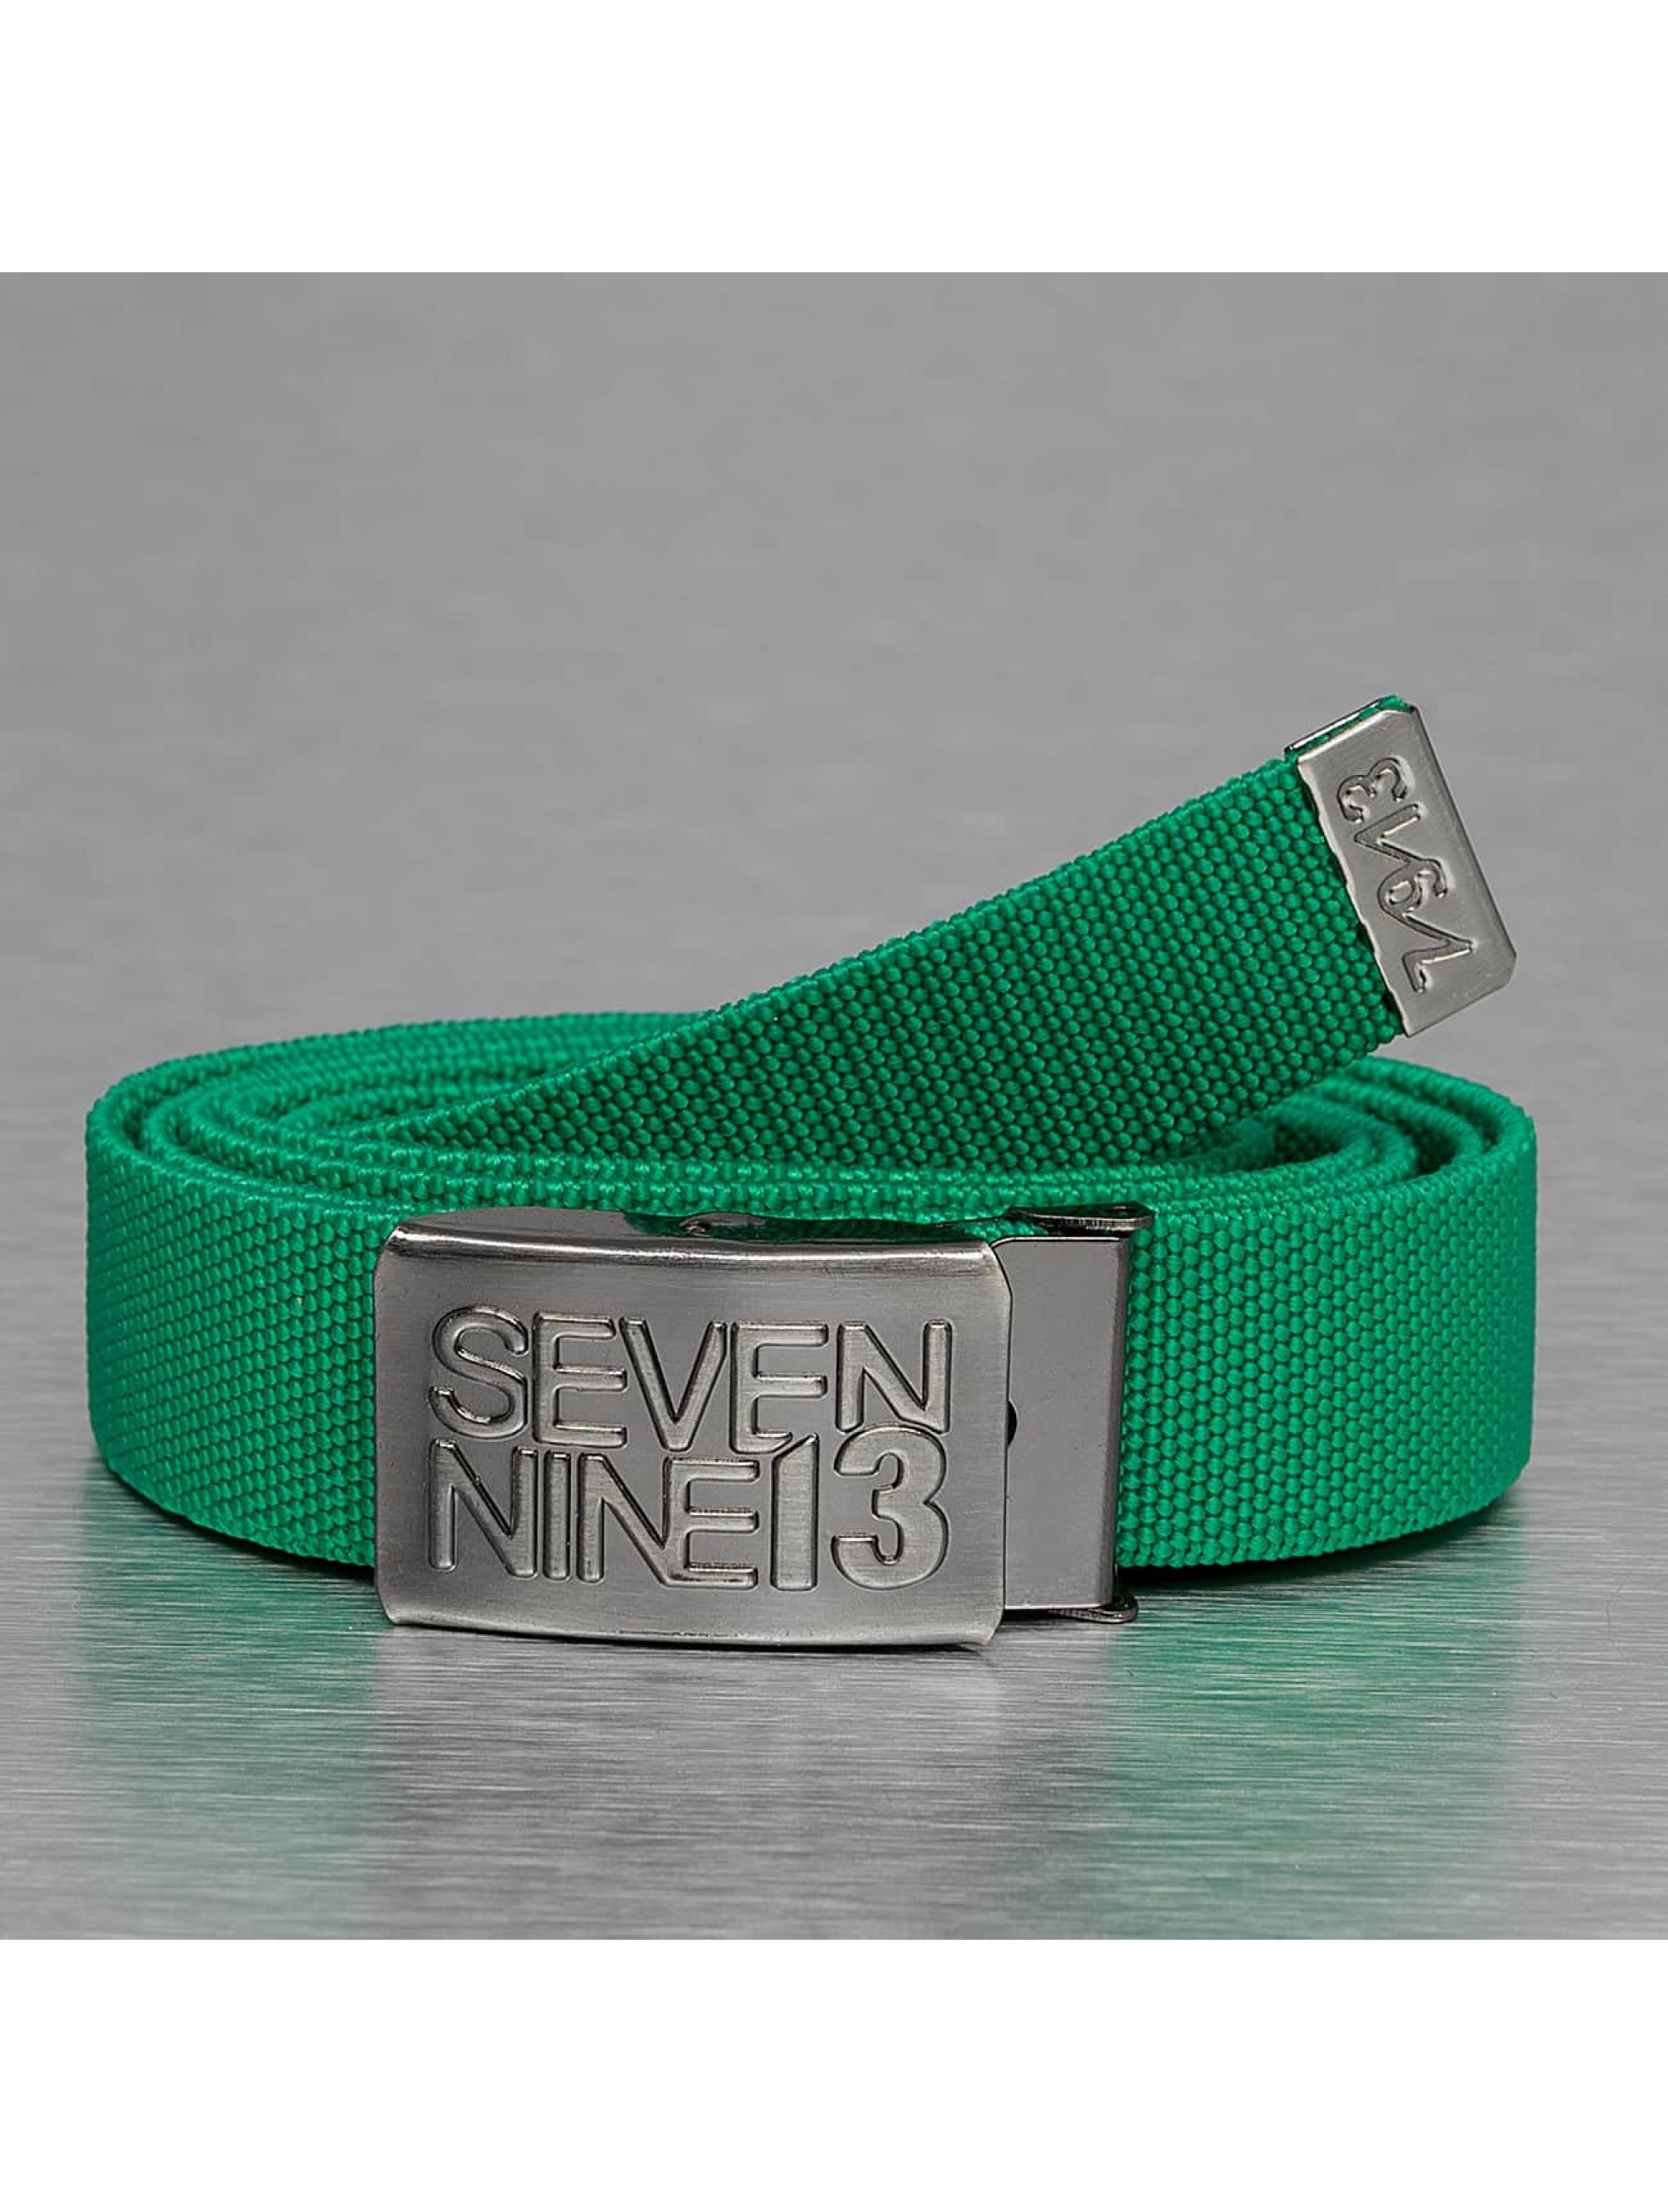 Seven Nine 13 Belt Jaws Stretch green